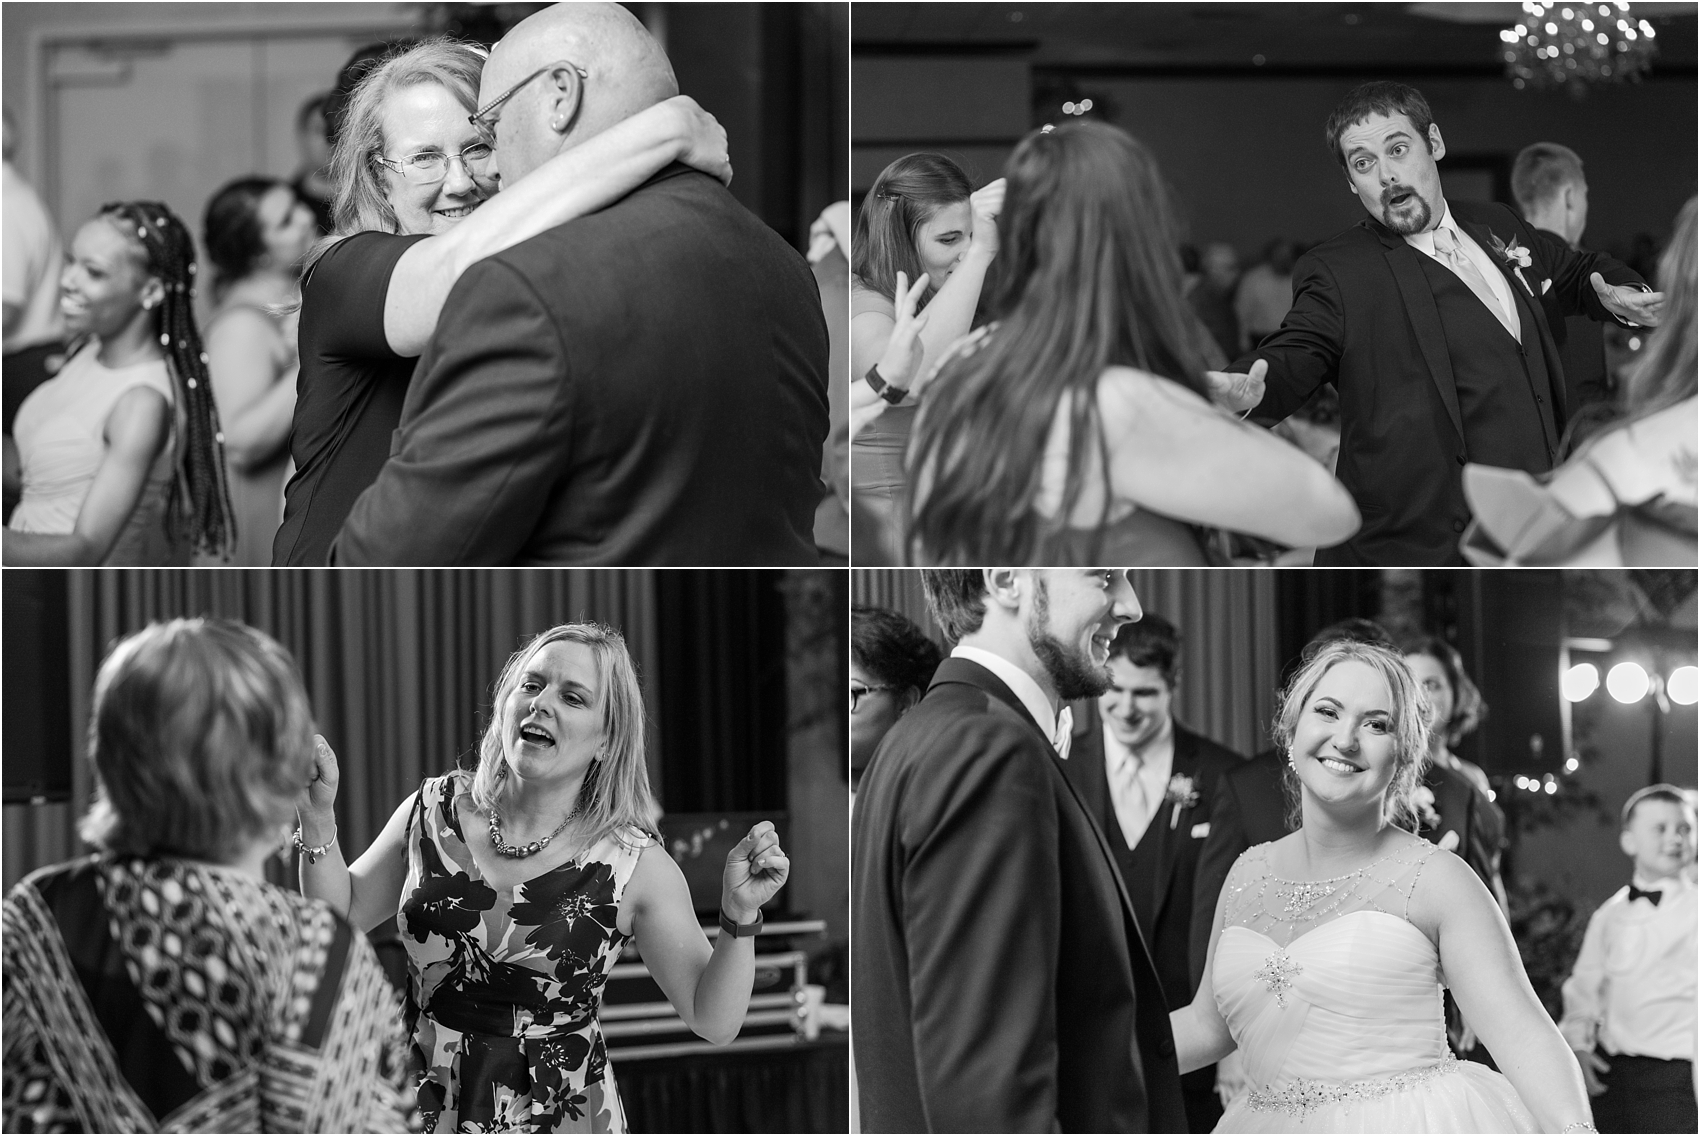 lord-of-the-rings-inspired-wedding-photos-at-crystal-gardens-in-howell-mi-by-courtney-carolyn-photography_0127.jpg